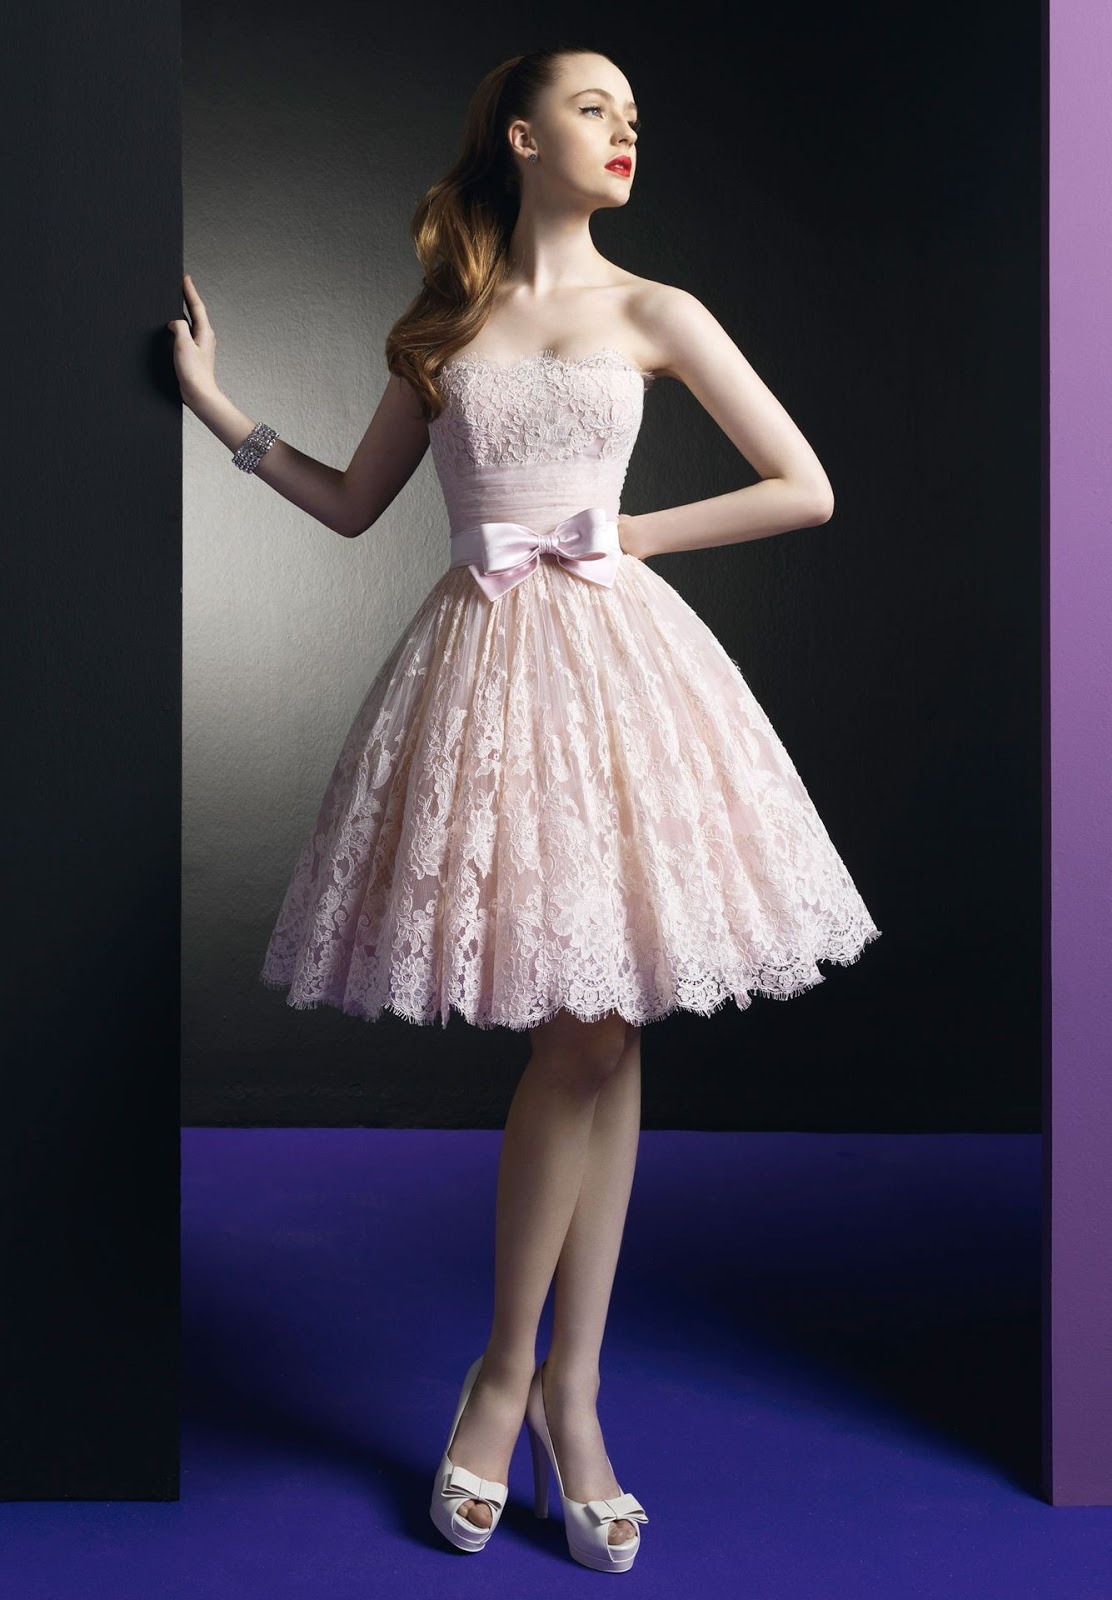 WhiteAzalea Ball Gowns: Short Ball Gowns Makes You More Stunning